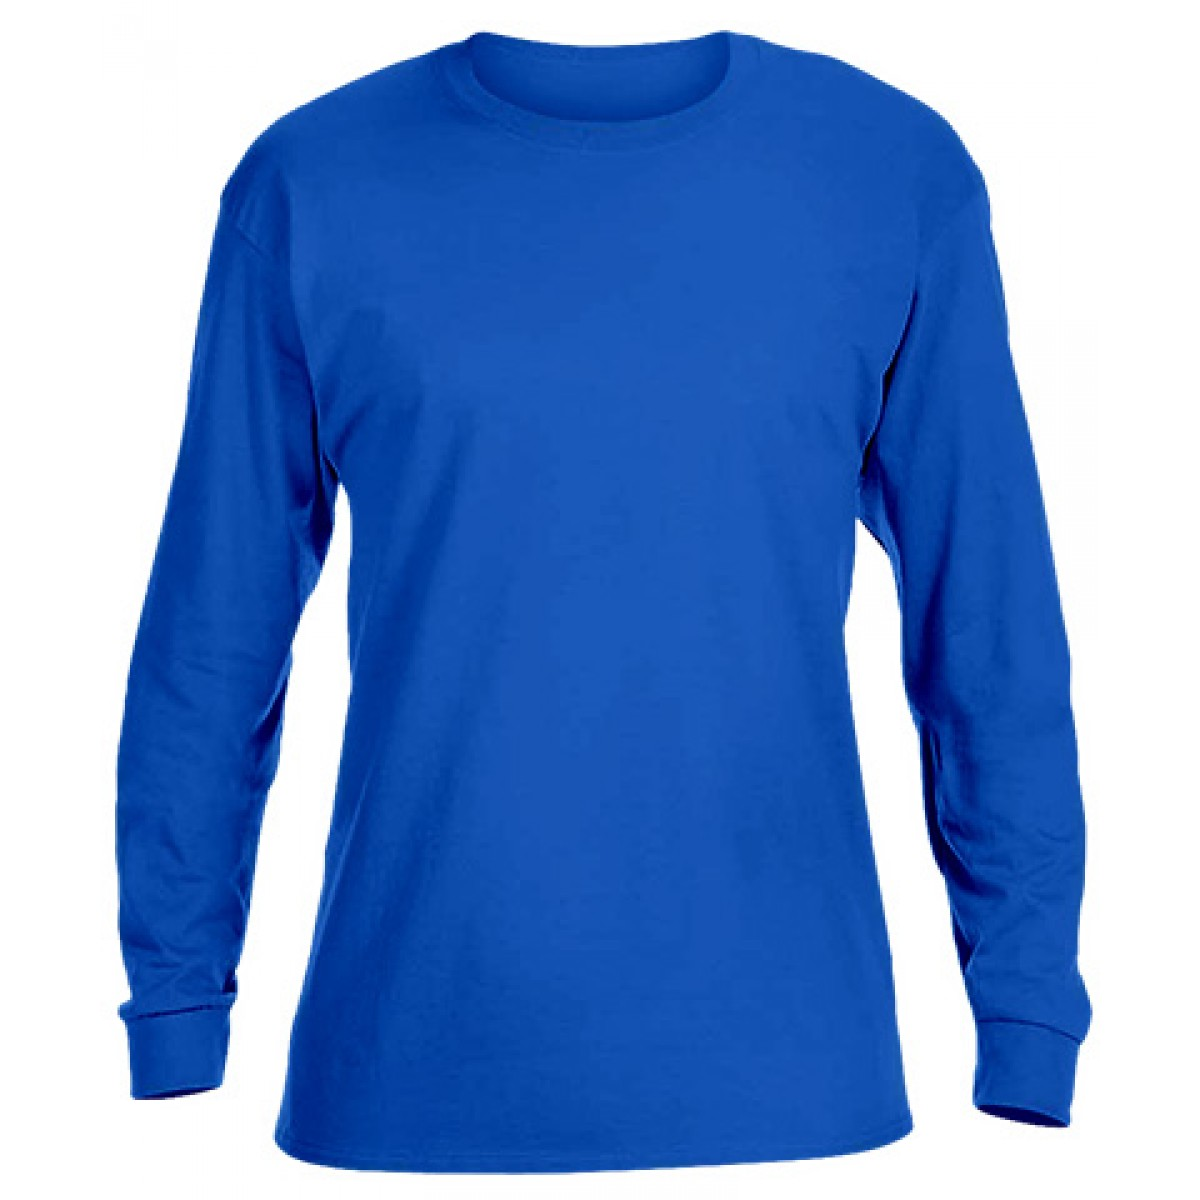 Basic Long Sleeve Crew Neck -Royal Blue-M